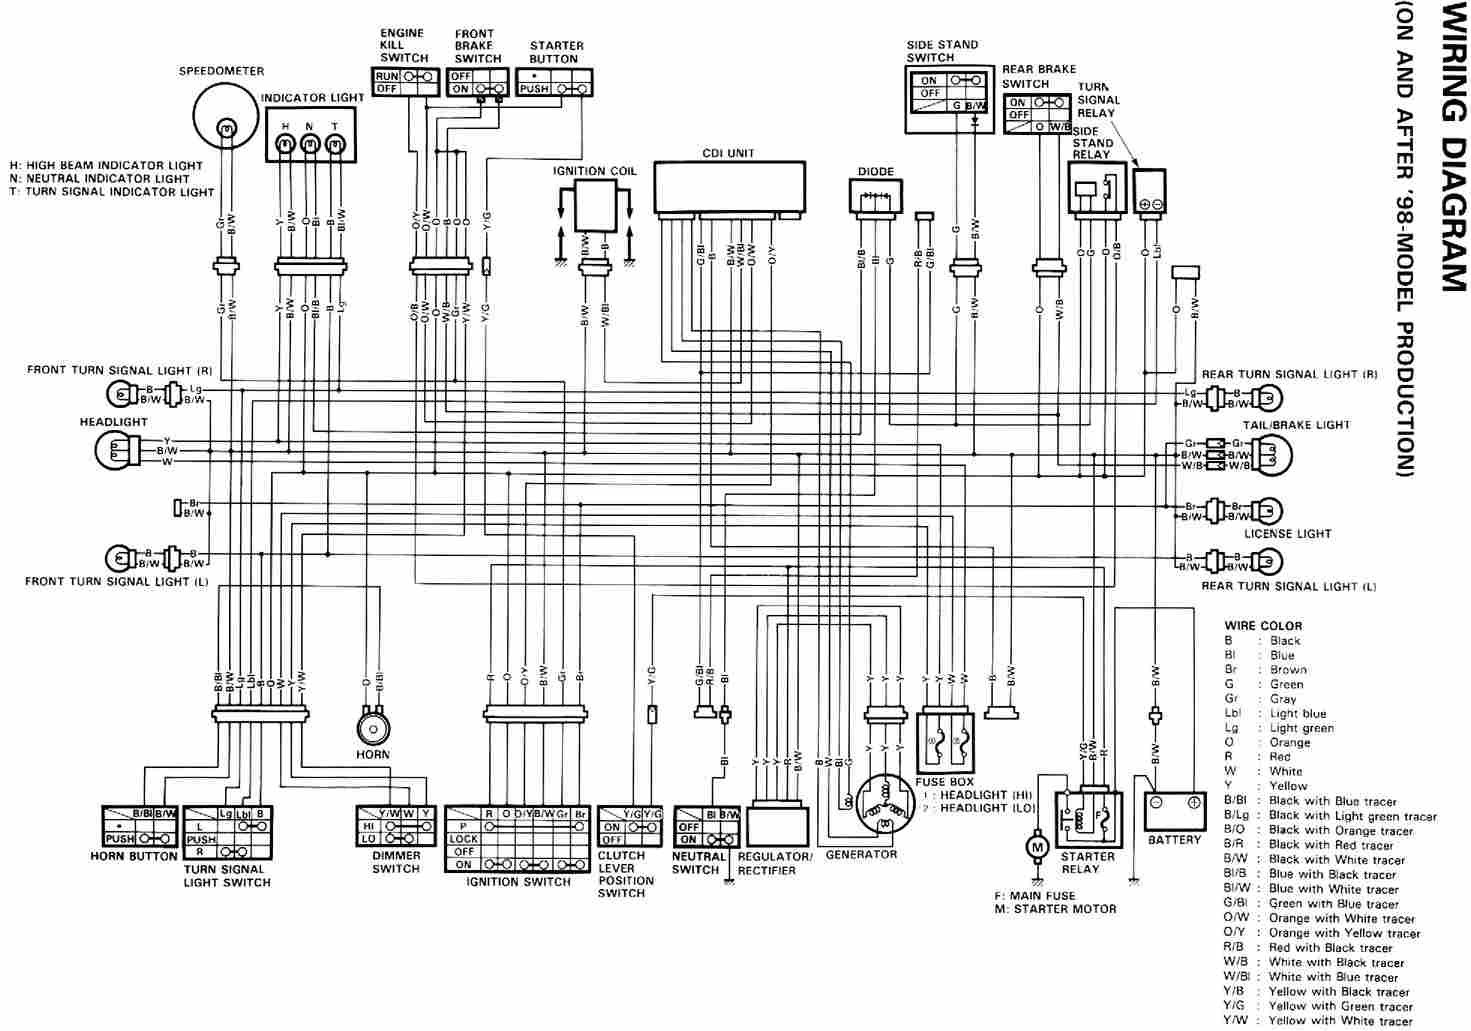 motorcycle wiring for idiots furthermore suzuki gs 750 wiringdiagram further suzuki wiring diagram on gs 750 [ 1471 x 1031 Pixel ]